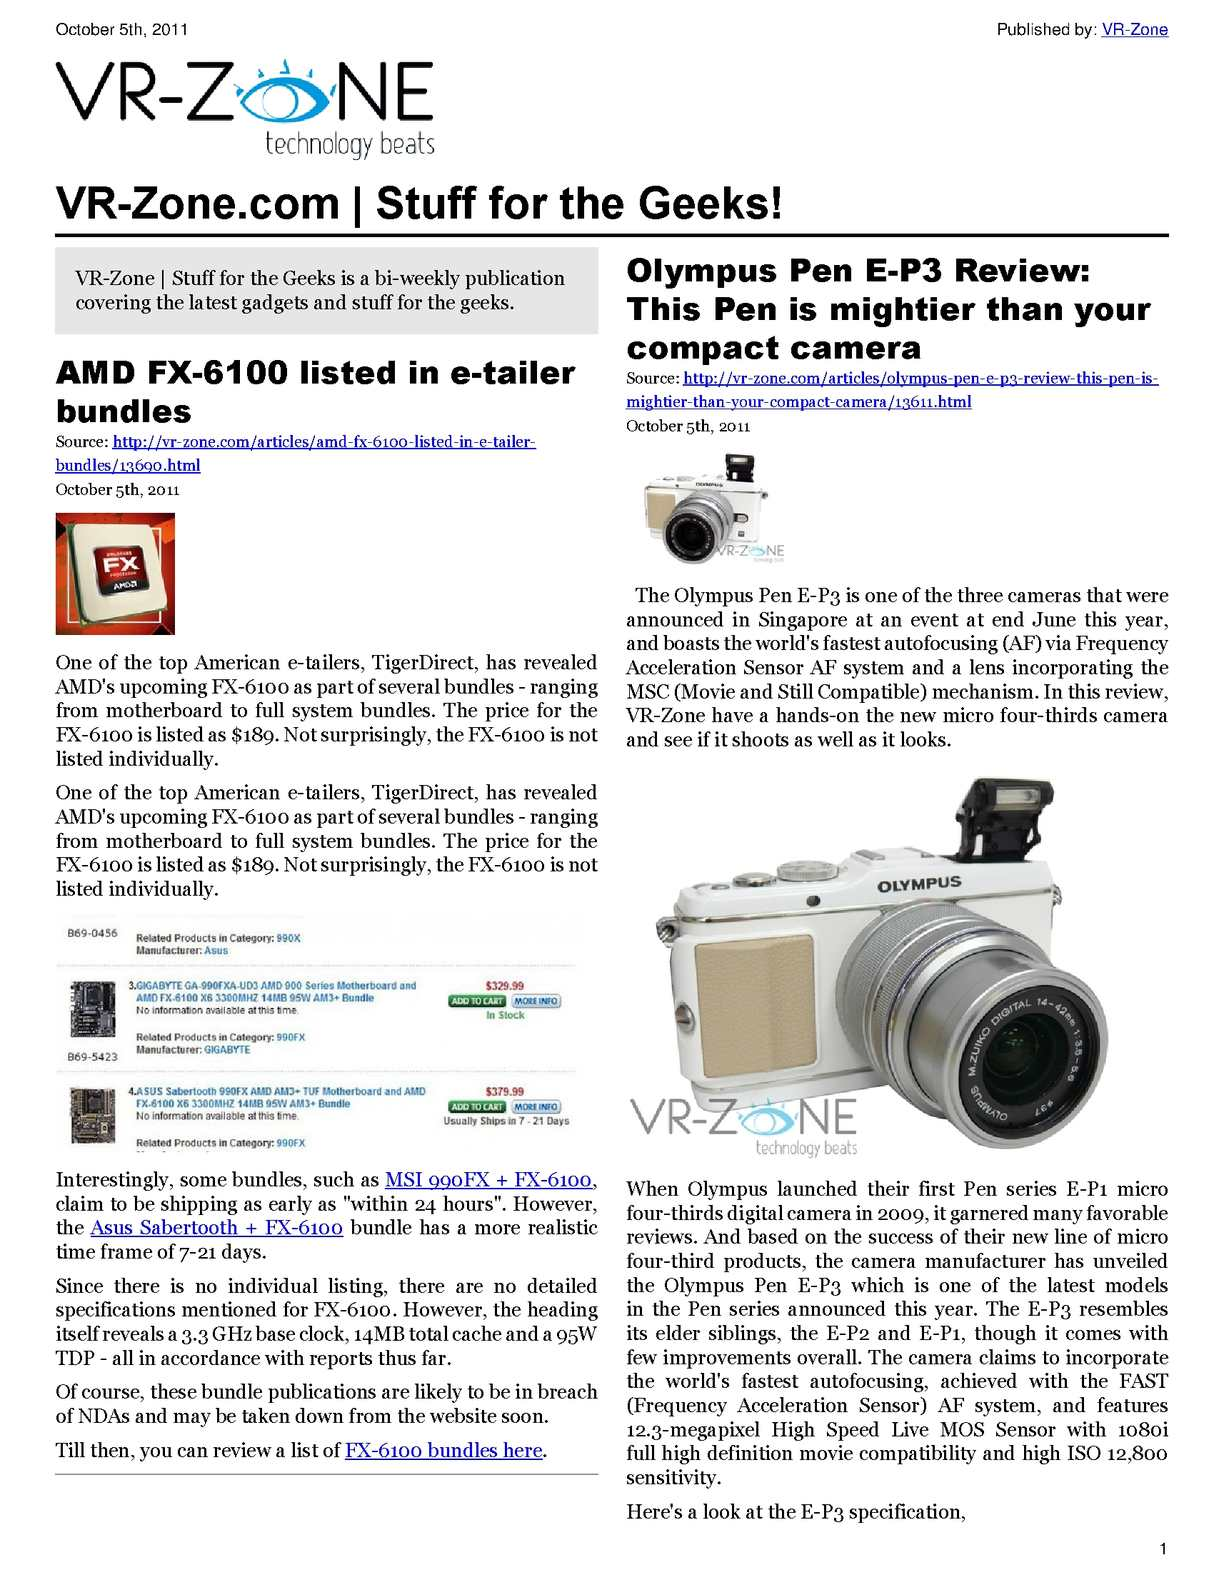 Calamo Vr Zone Tech News For The Geeks Oct 2011 Issue Streamer With 3x Airplay Ce Pro On Installing Outdoor Wiring Speakers